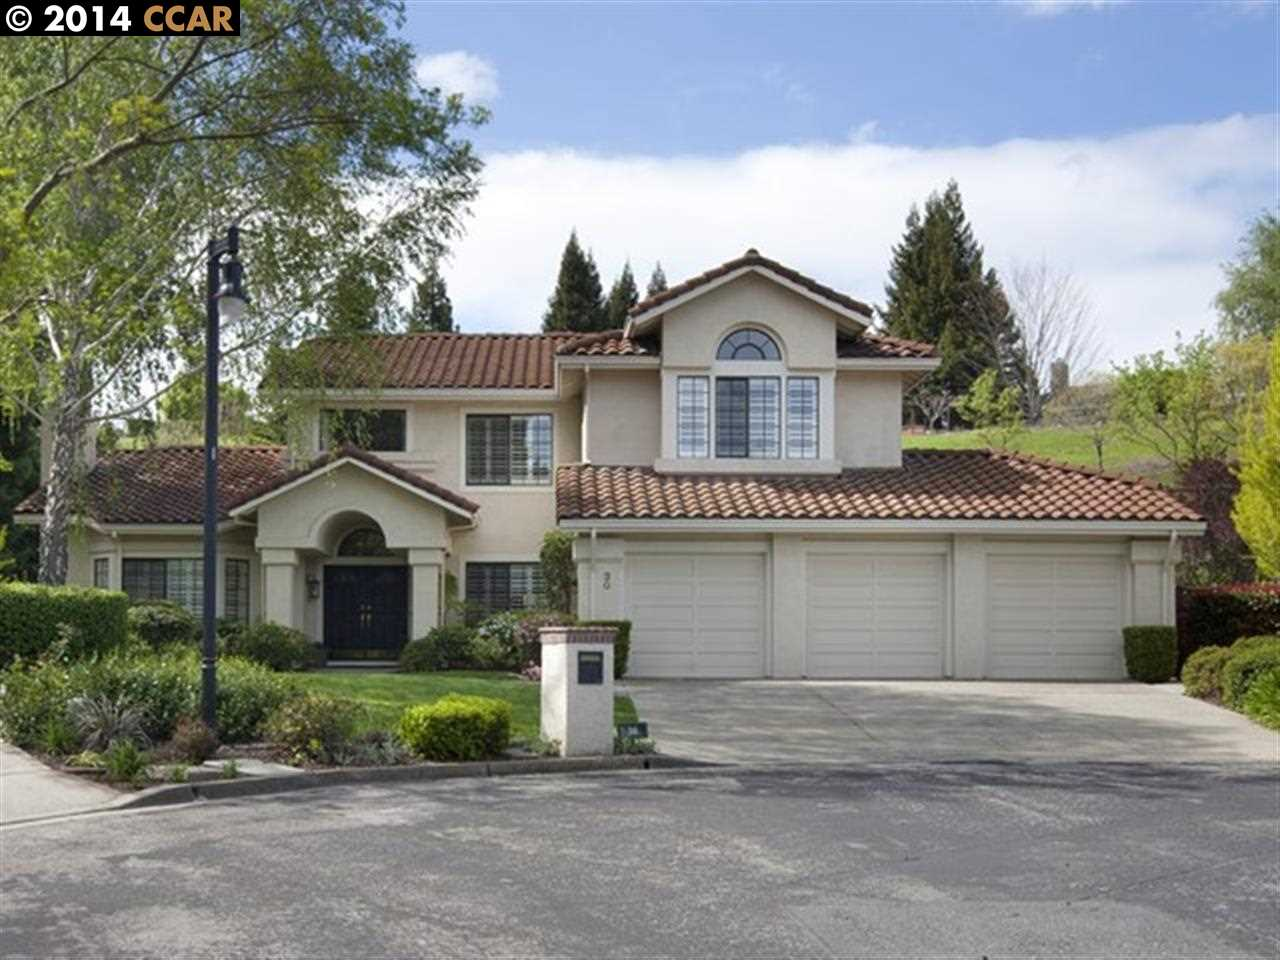 Additional photo for property listing at 30 Foothill Court  Danville, カリフォルニア 94506 アメリカ合衆国